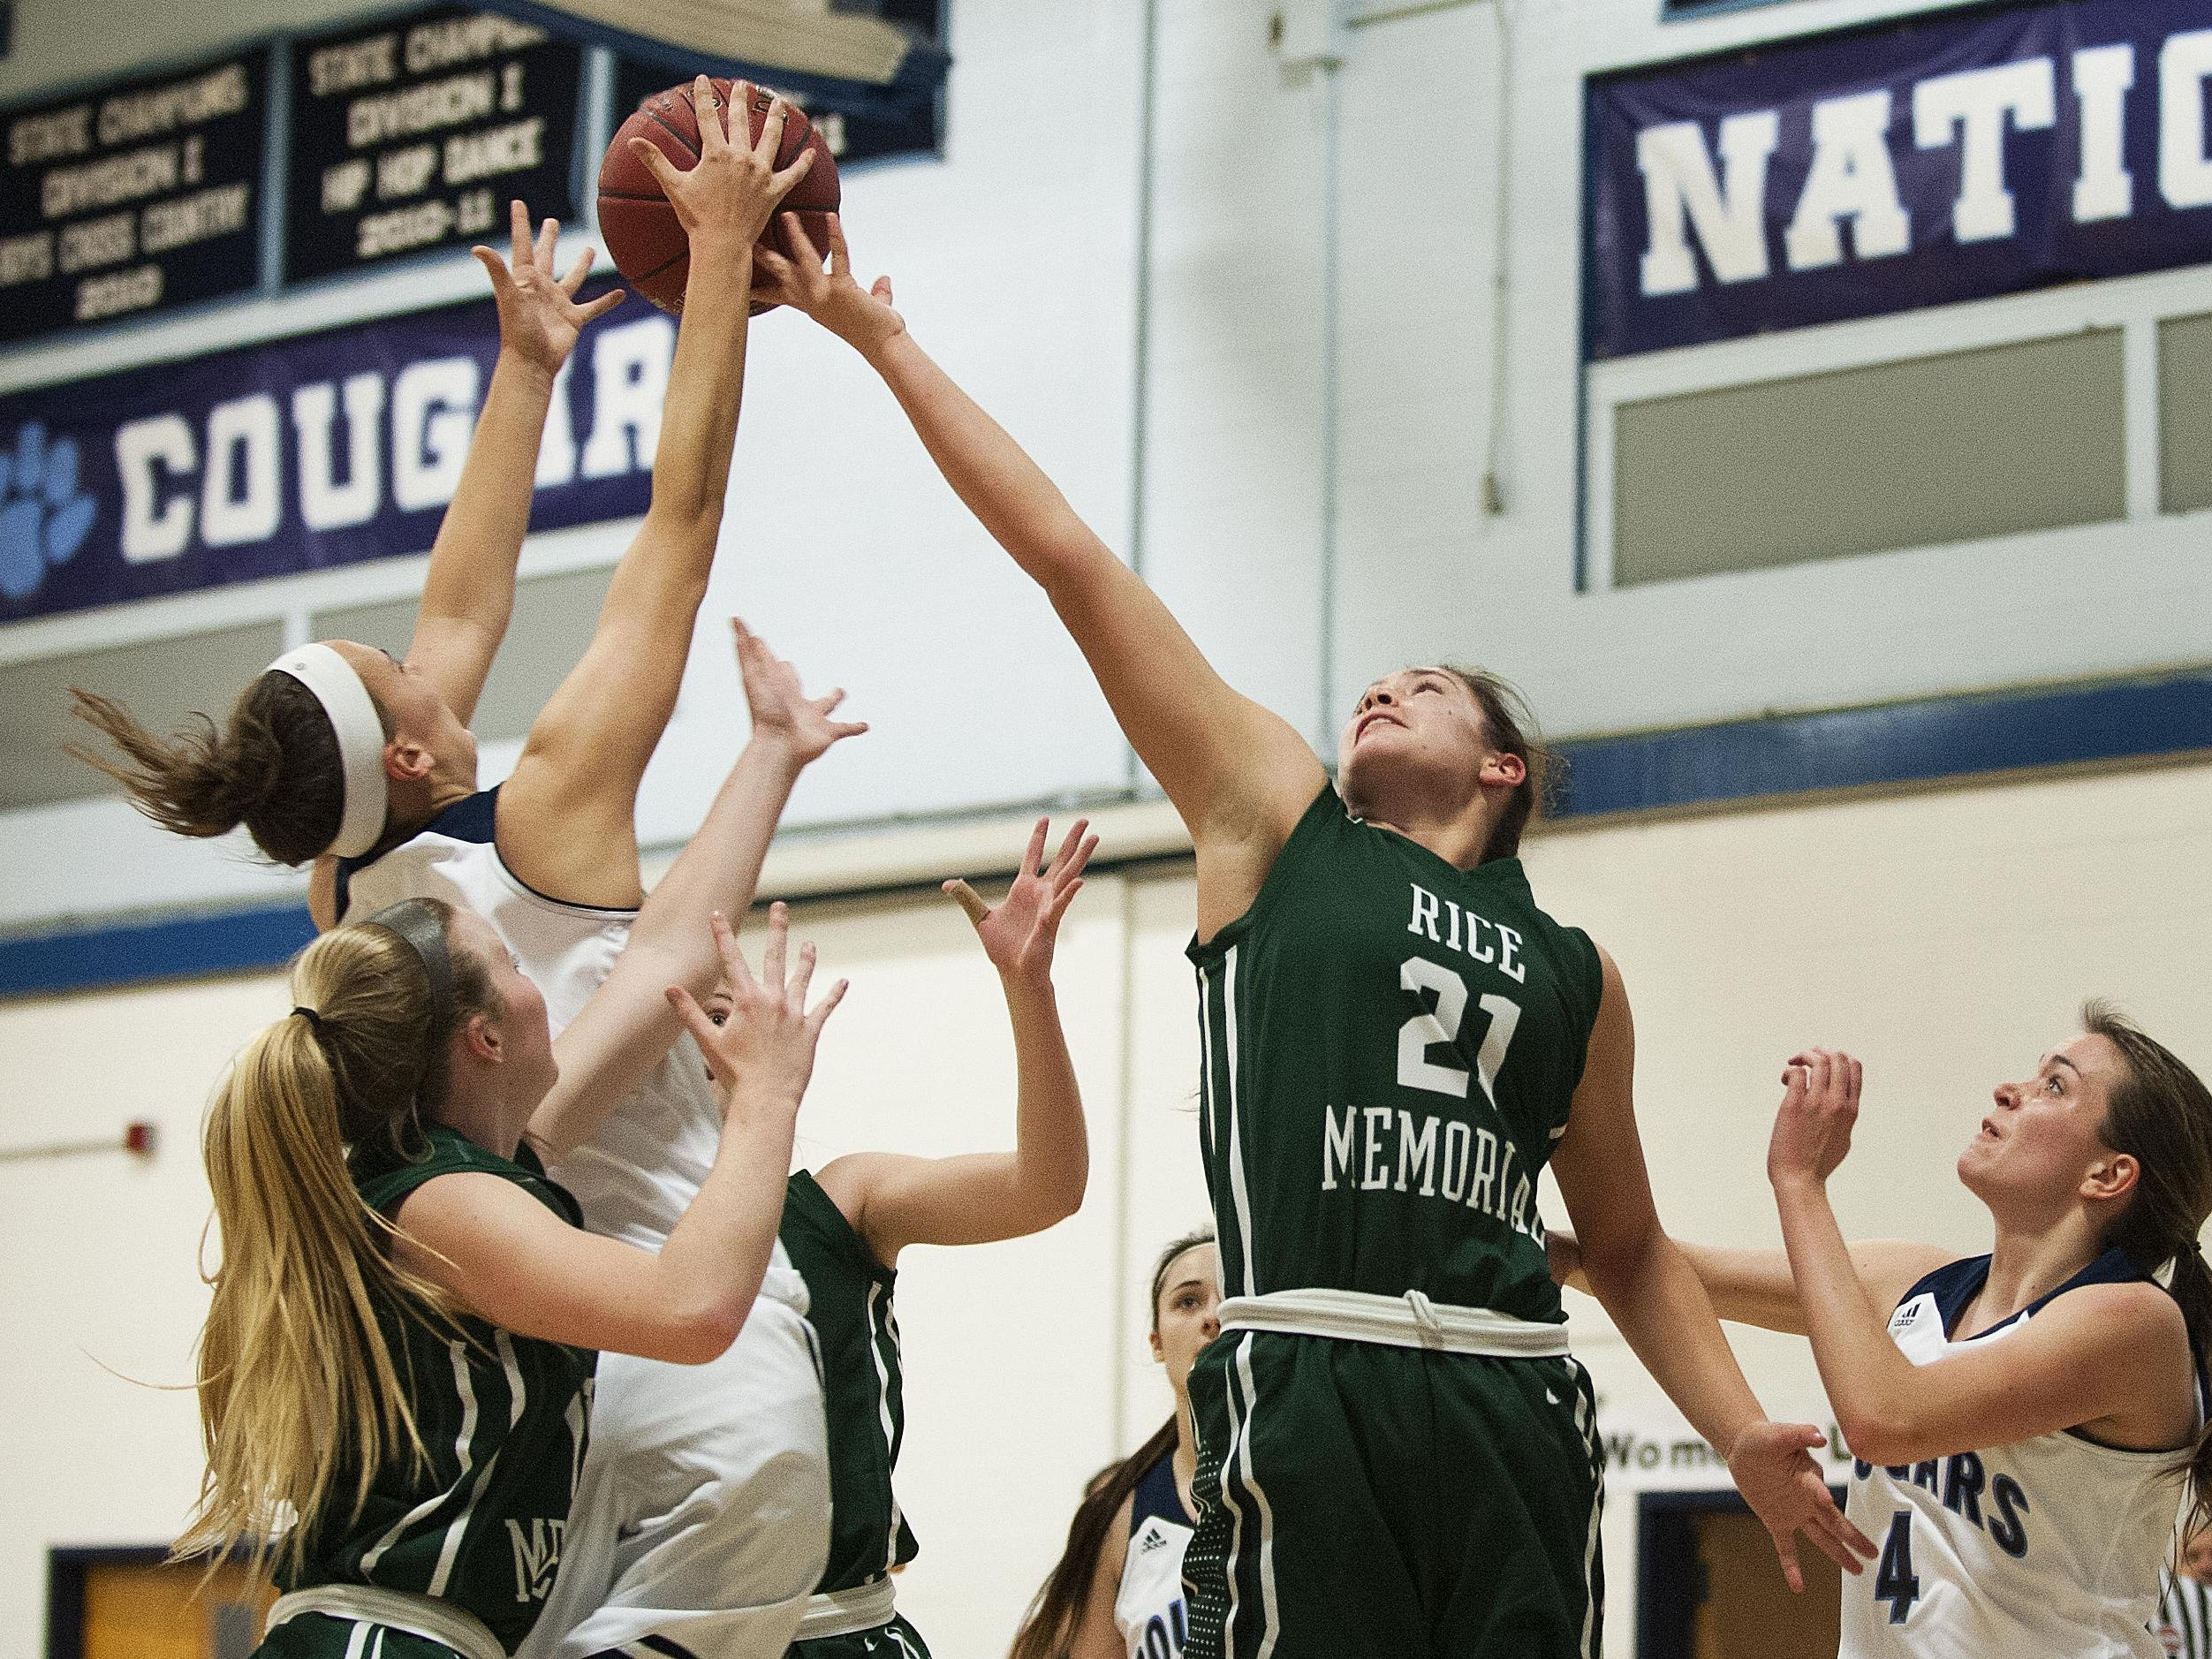 Rice forward Rachel Chicoine (21) and Mount Mansfield forward Katie Estes (14) battle for the rebound during the girls basketball game between the Green Knights and the Cougars on Friday night in Jericho.